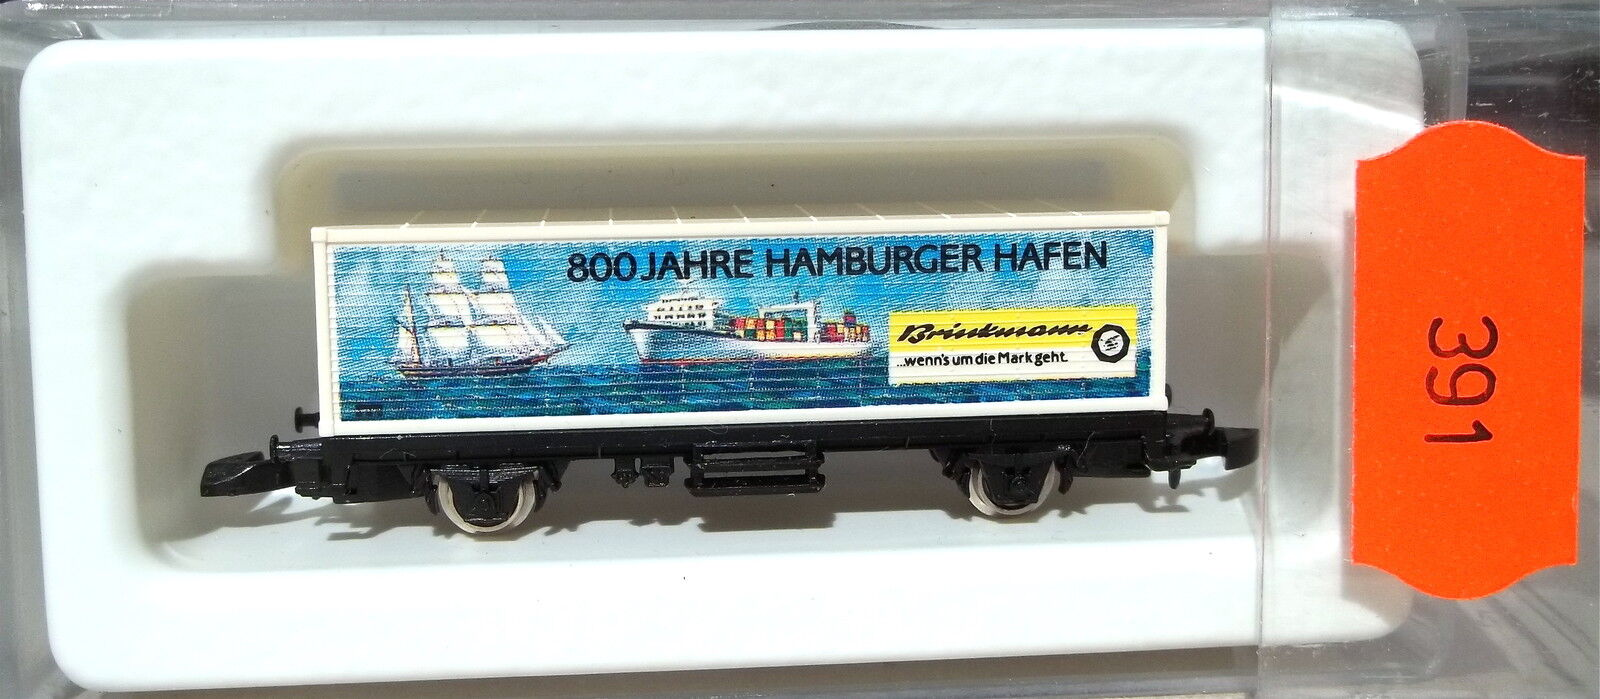 800 Ans Hamburger Port, Wagon Transport de Conteneurs Kolls 90721 Märklin 8615 Z